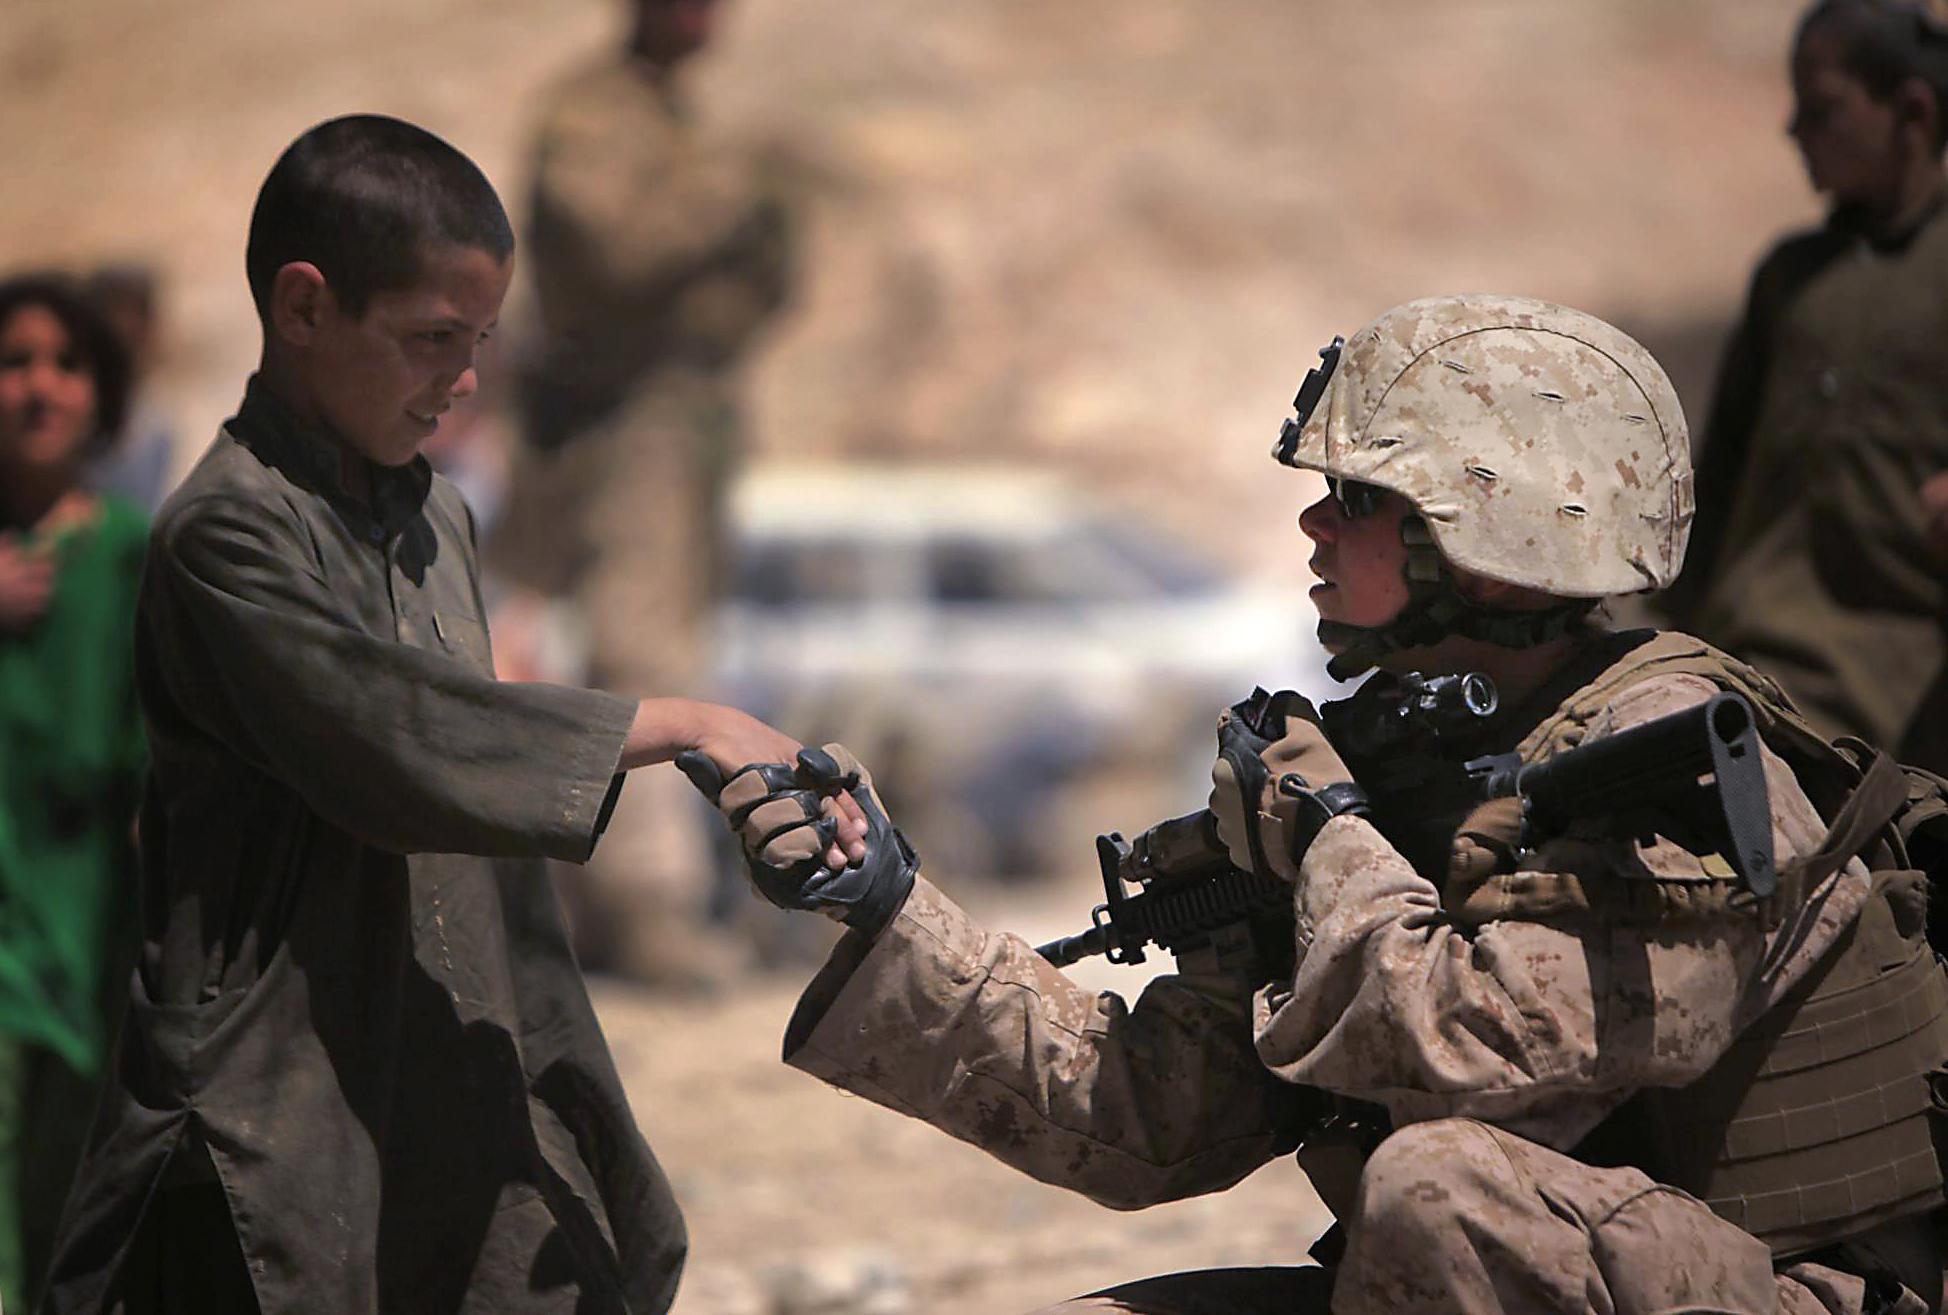 Buddhist Right Action In Practice US Marines